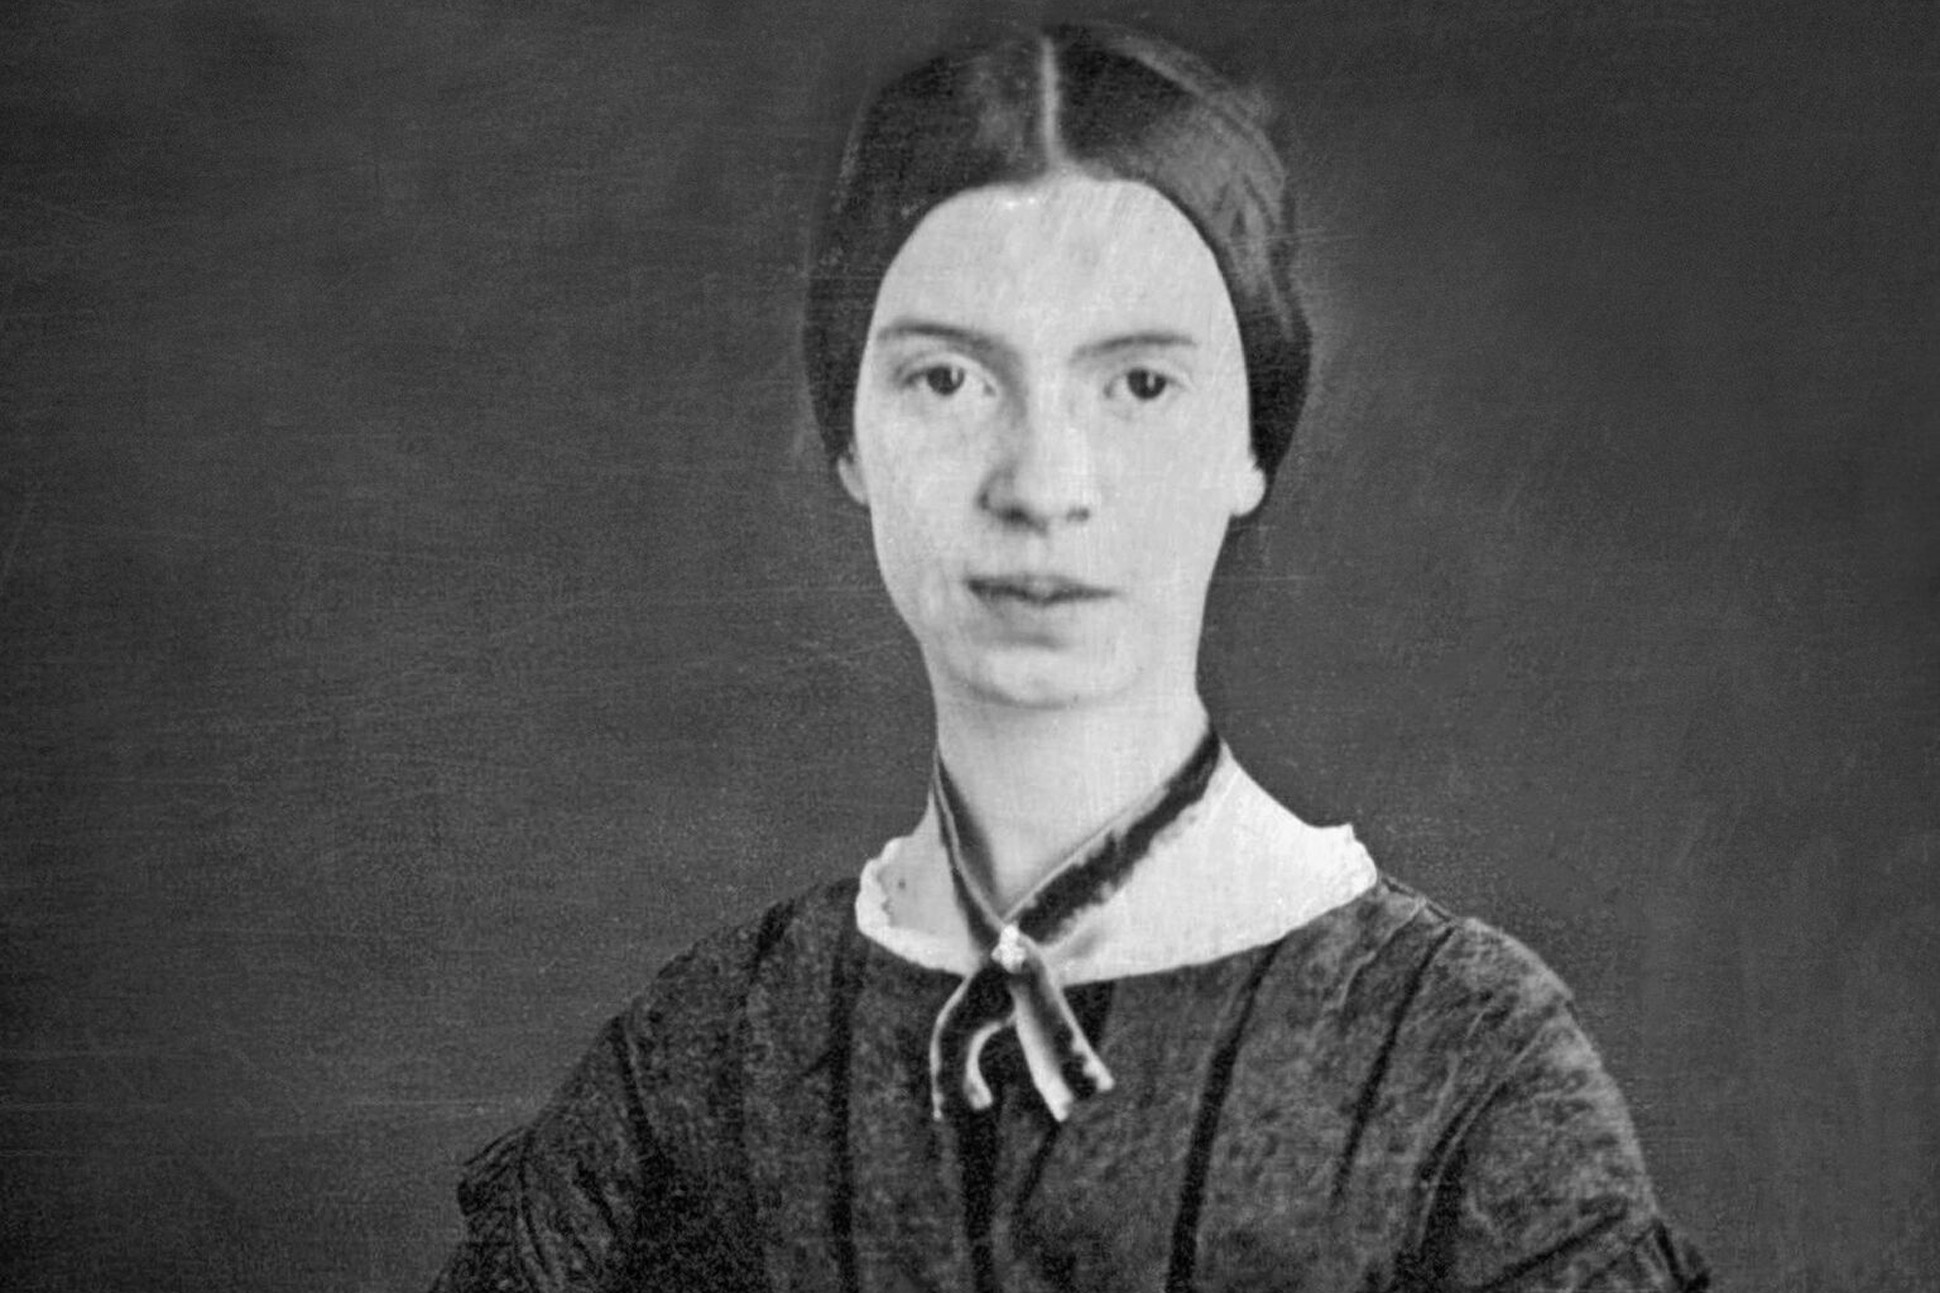 Black and white image of Emily Dickinson.